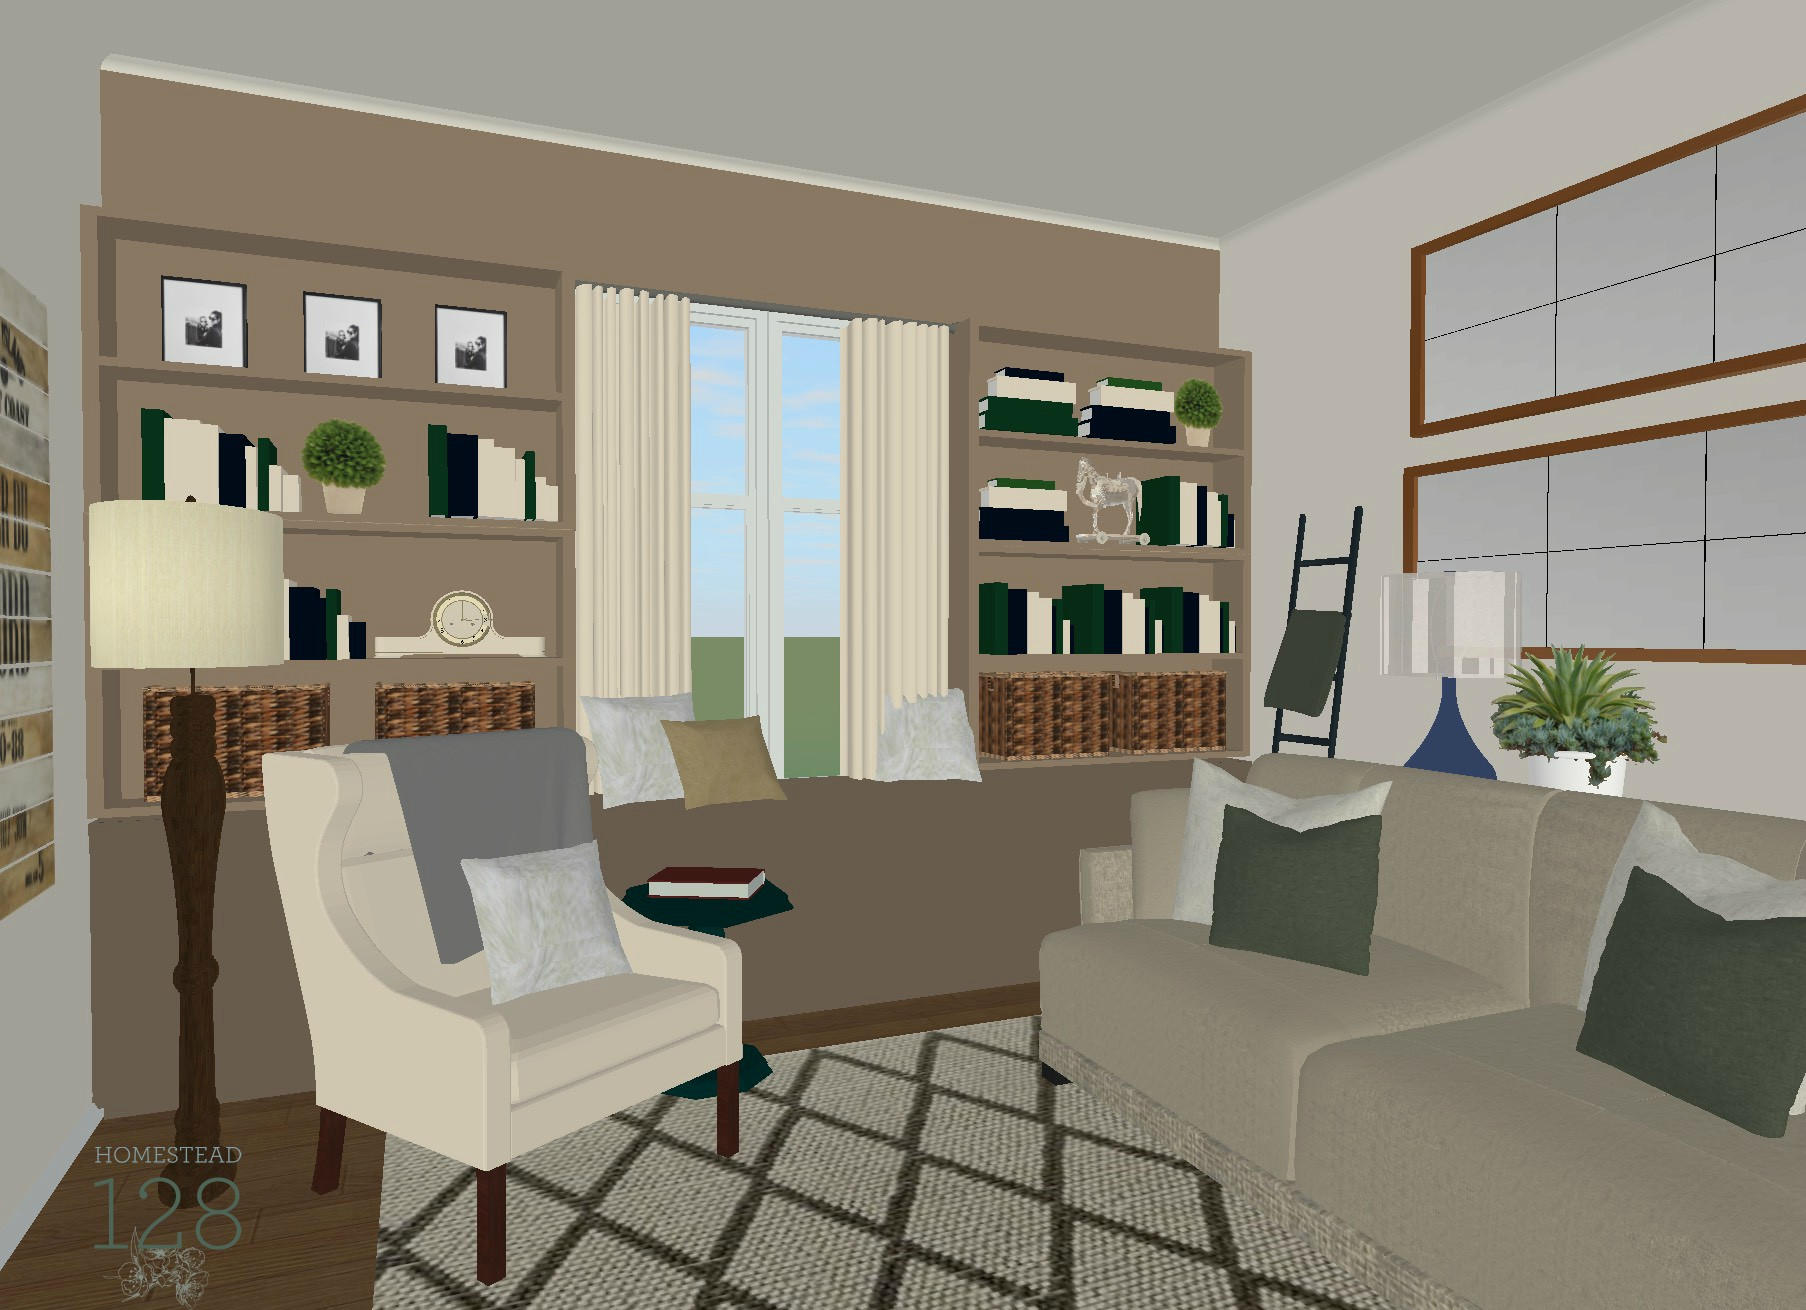 living room plans. A traditional style living room design plan includes neutrals  blues greens and a touch Traditional Living Room Design Plan with Neutrals Blues And Greens